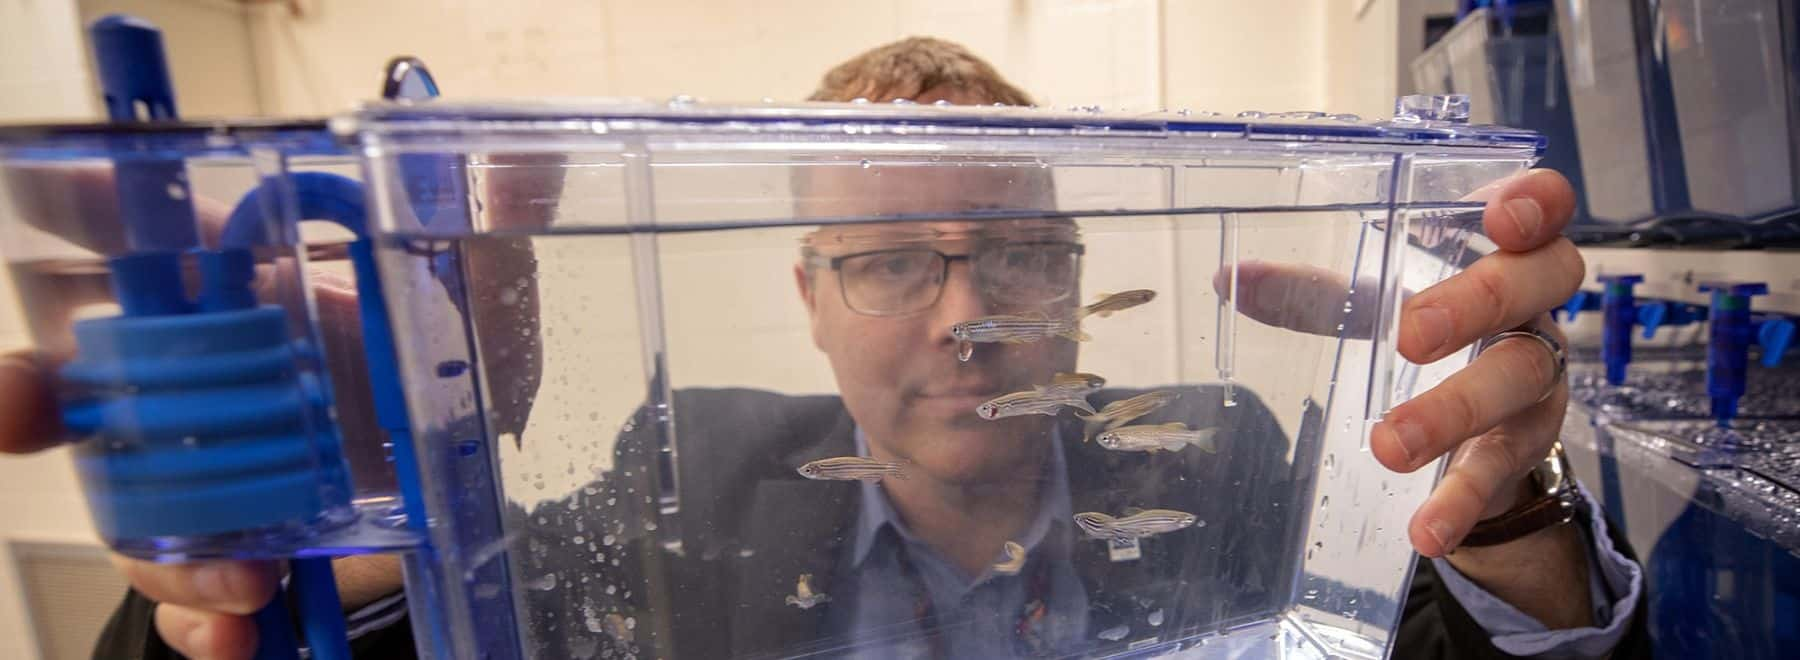 Male researcher examines fish experiment